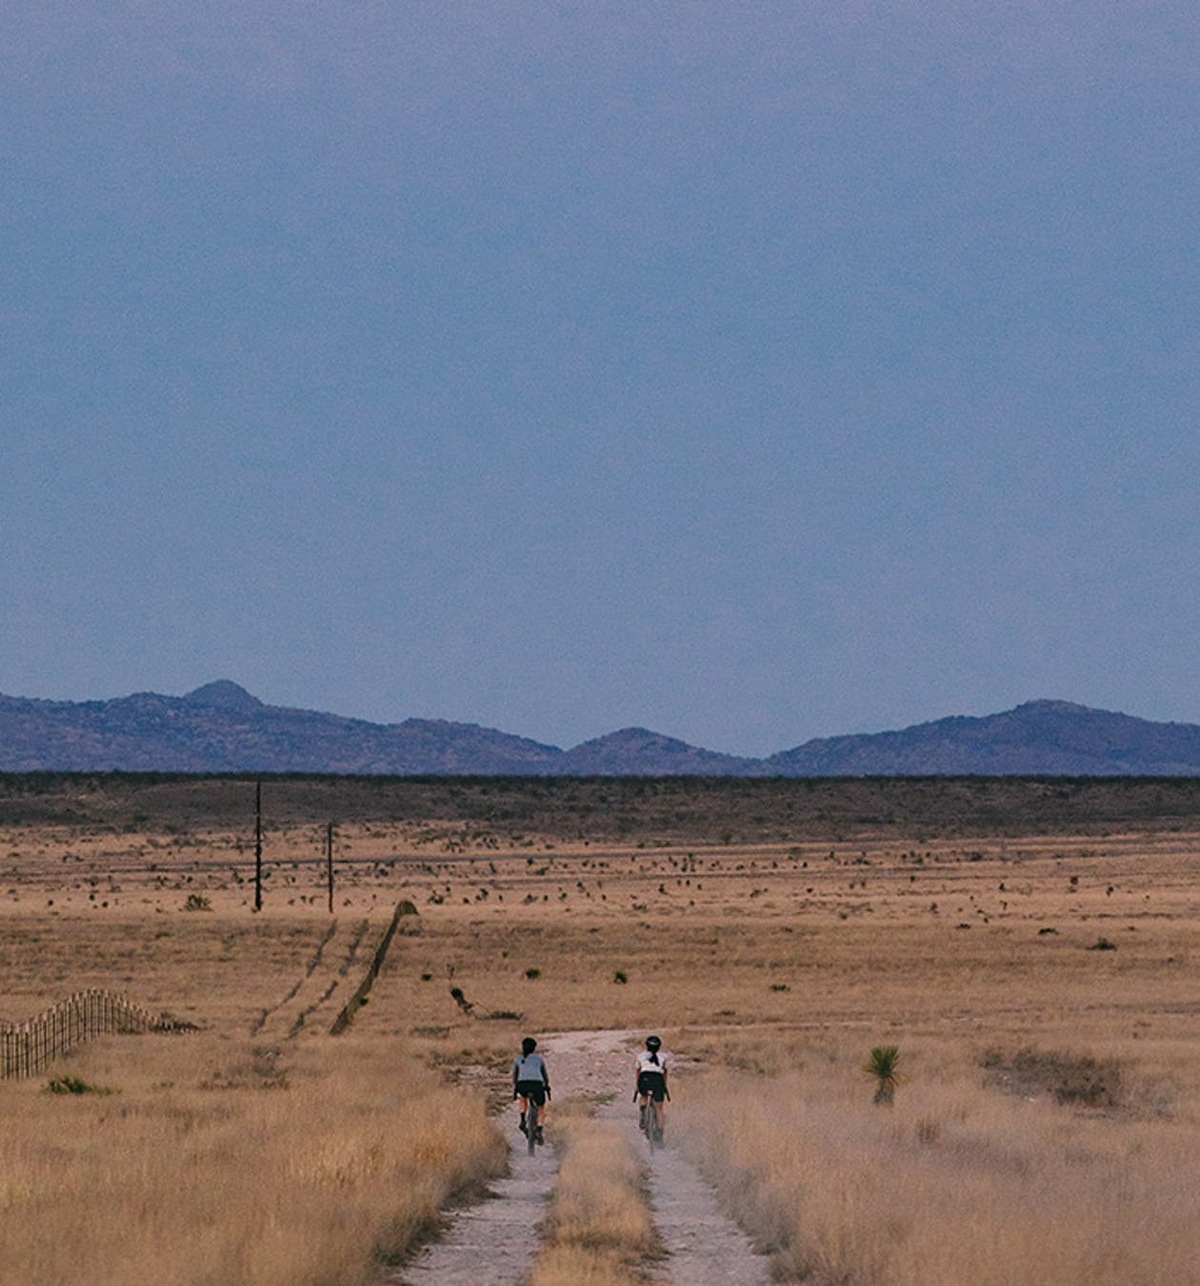 Two cyclists riding Juliana Quincy's down a dirt road with mountains in the background